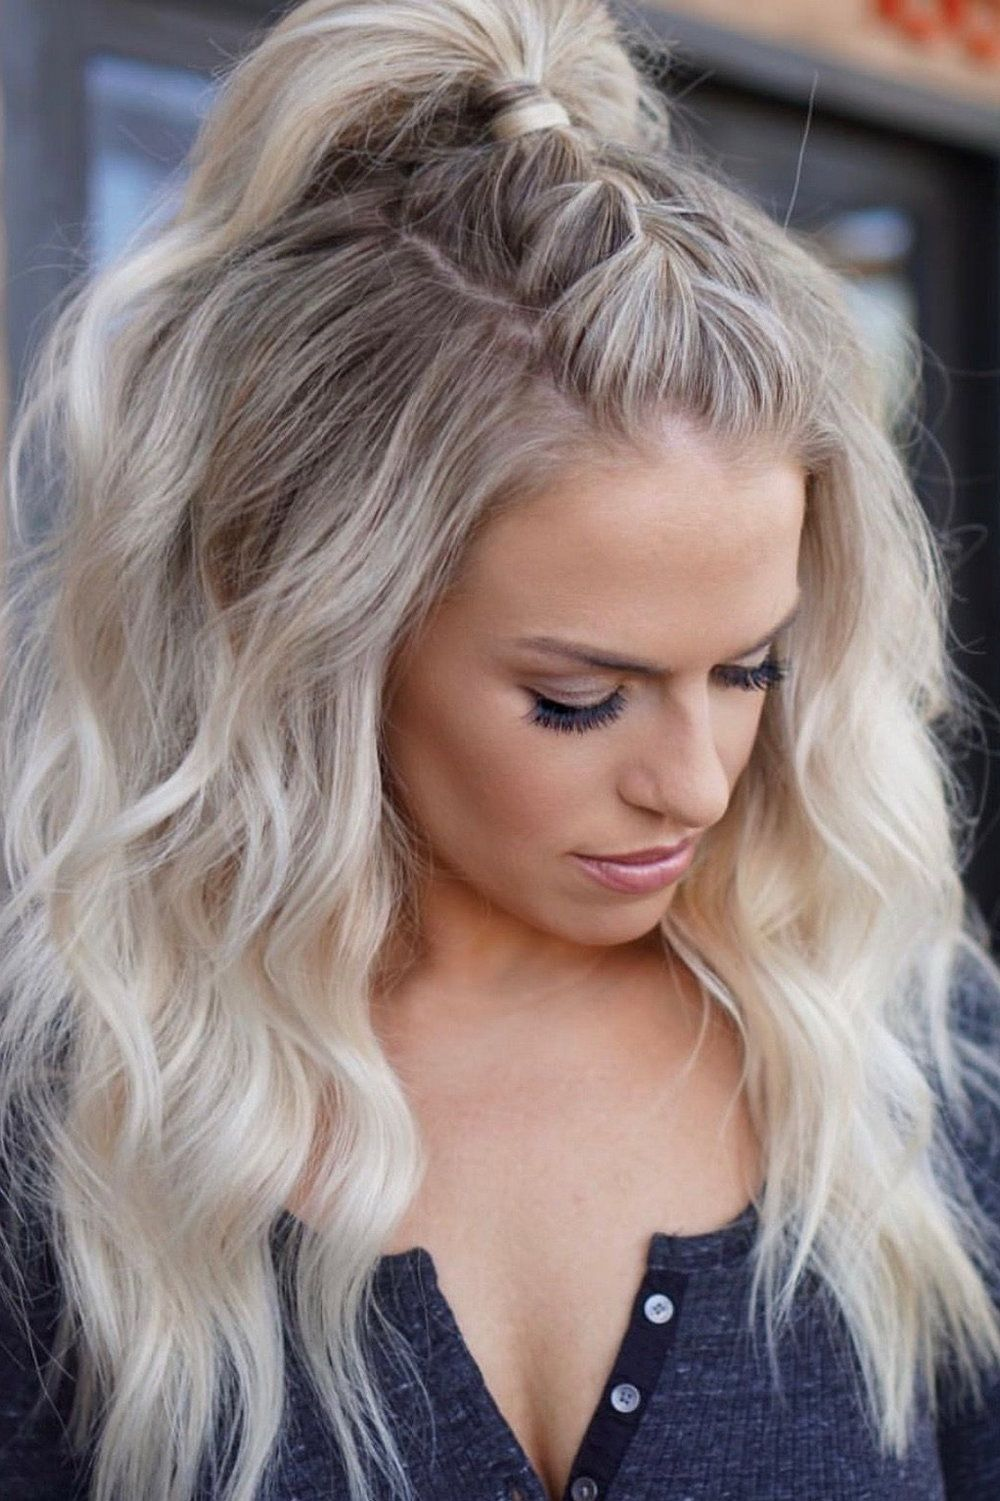 60 ultra flirty blonde hairstyles you have to try | styles